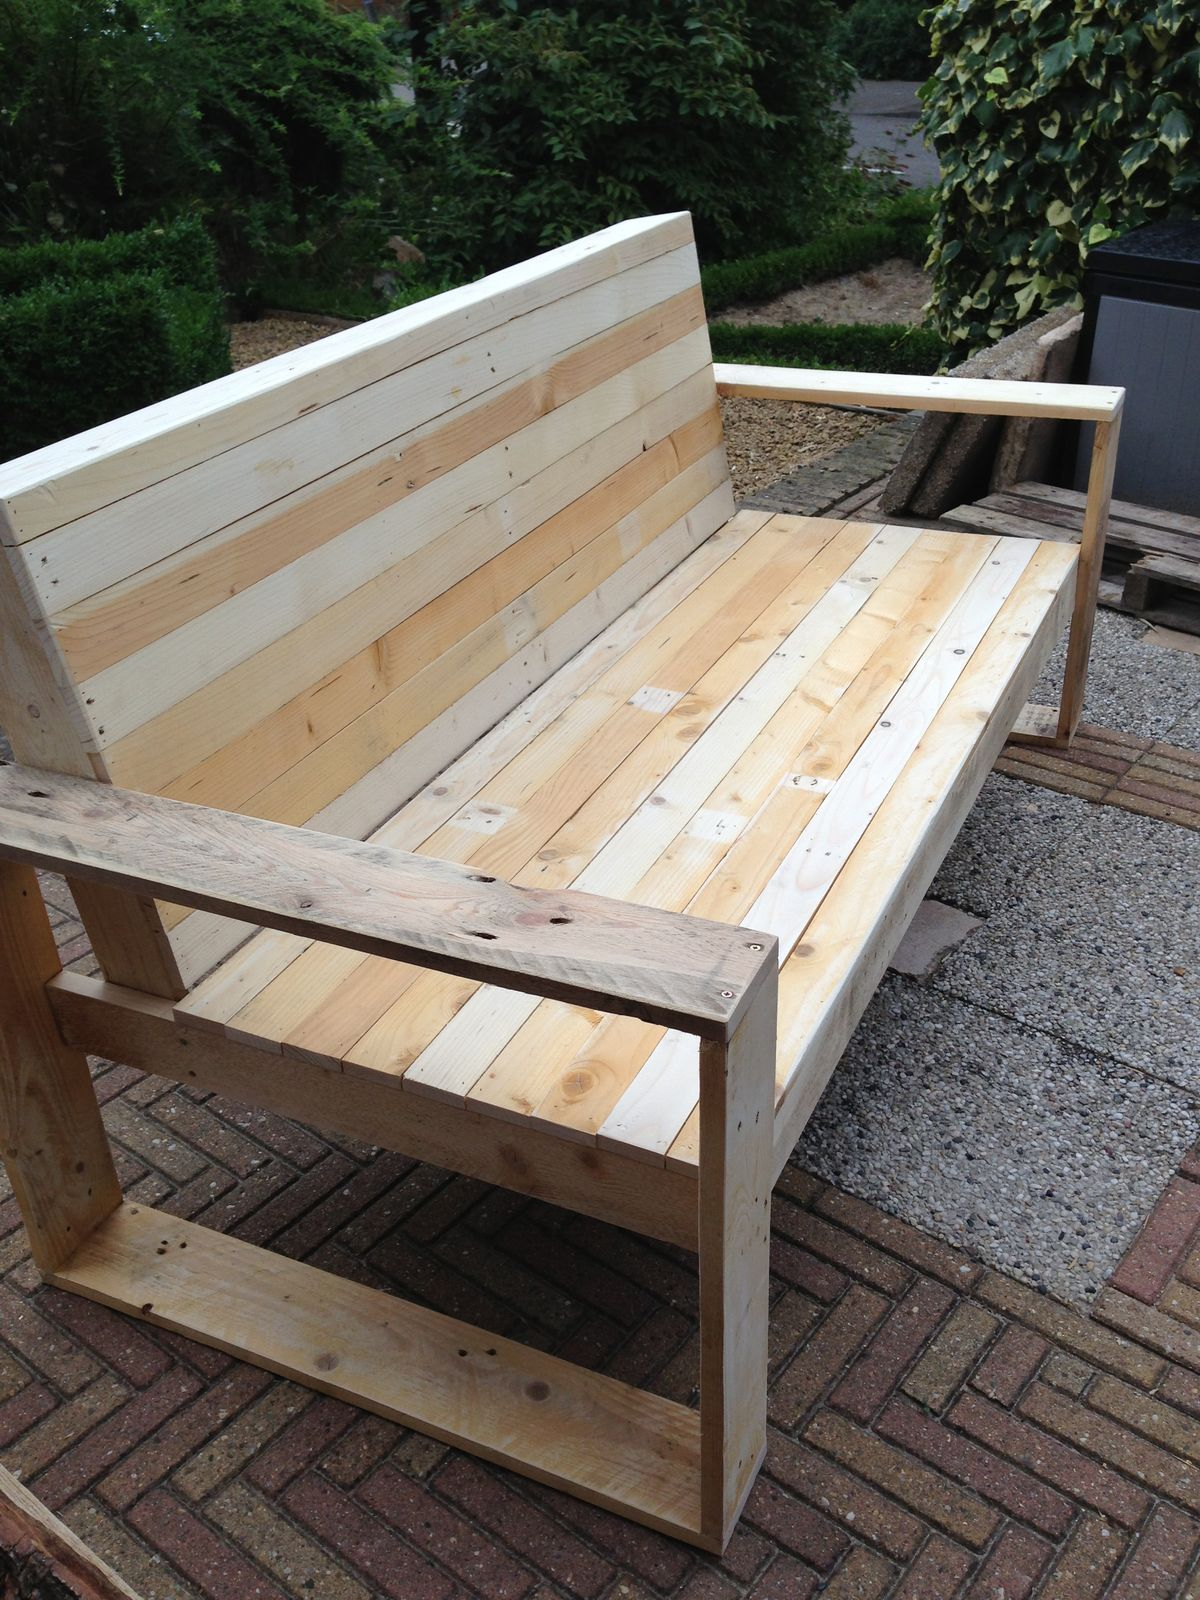 pallet outdoor furniture plans. 87794559b6ab74014f05140f8f5e5ae0.jpg 1,200×1,600 Pixels | DIY Pinterest Pallets, Woods And Bench Pallet Outdoor Furniture Plans